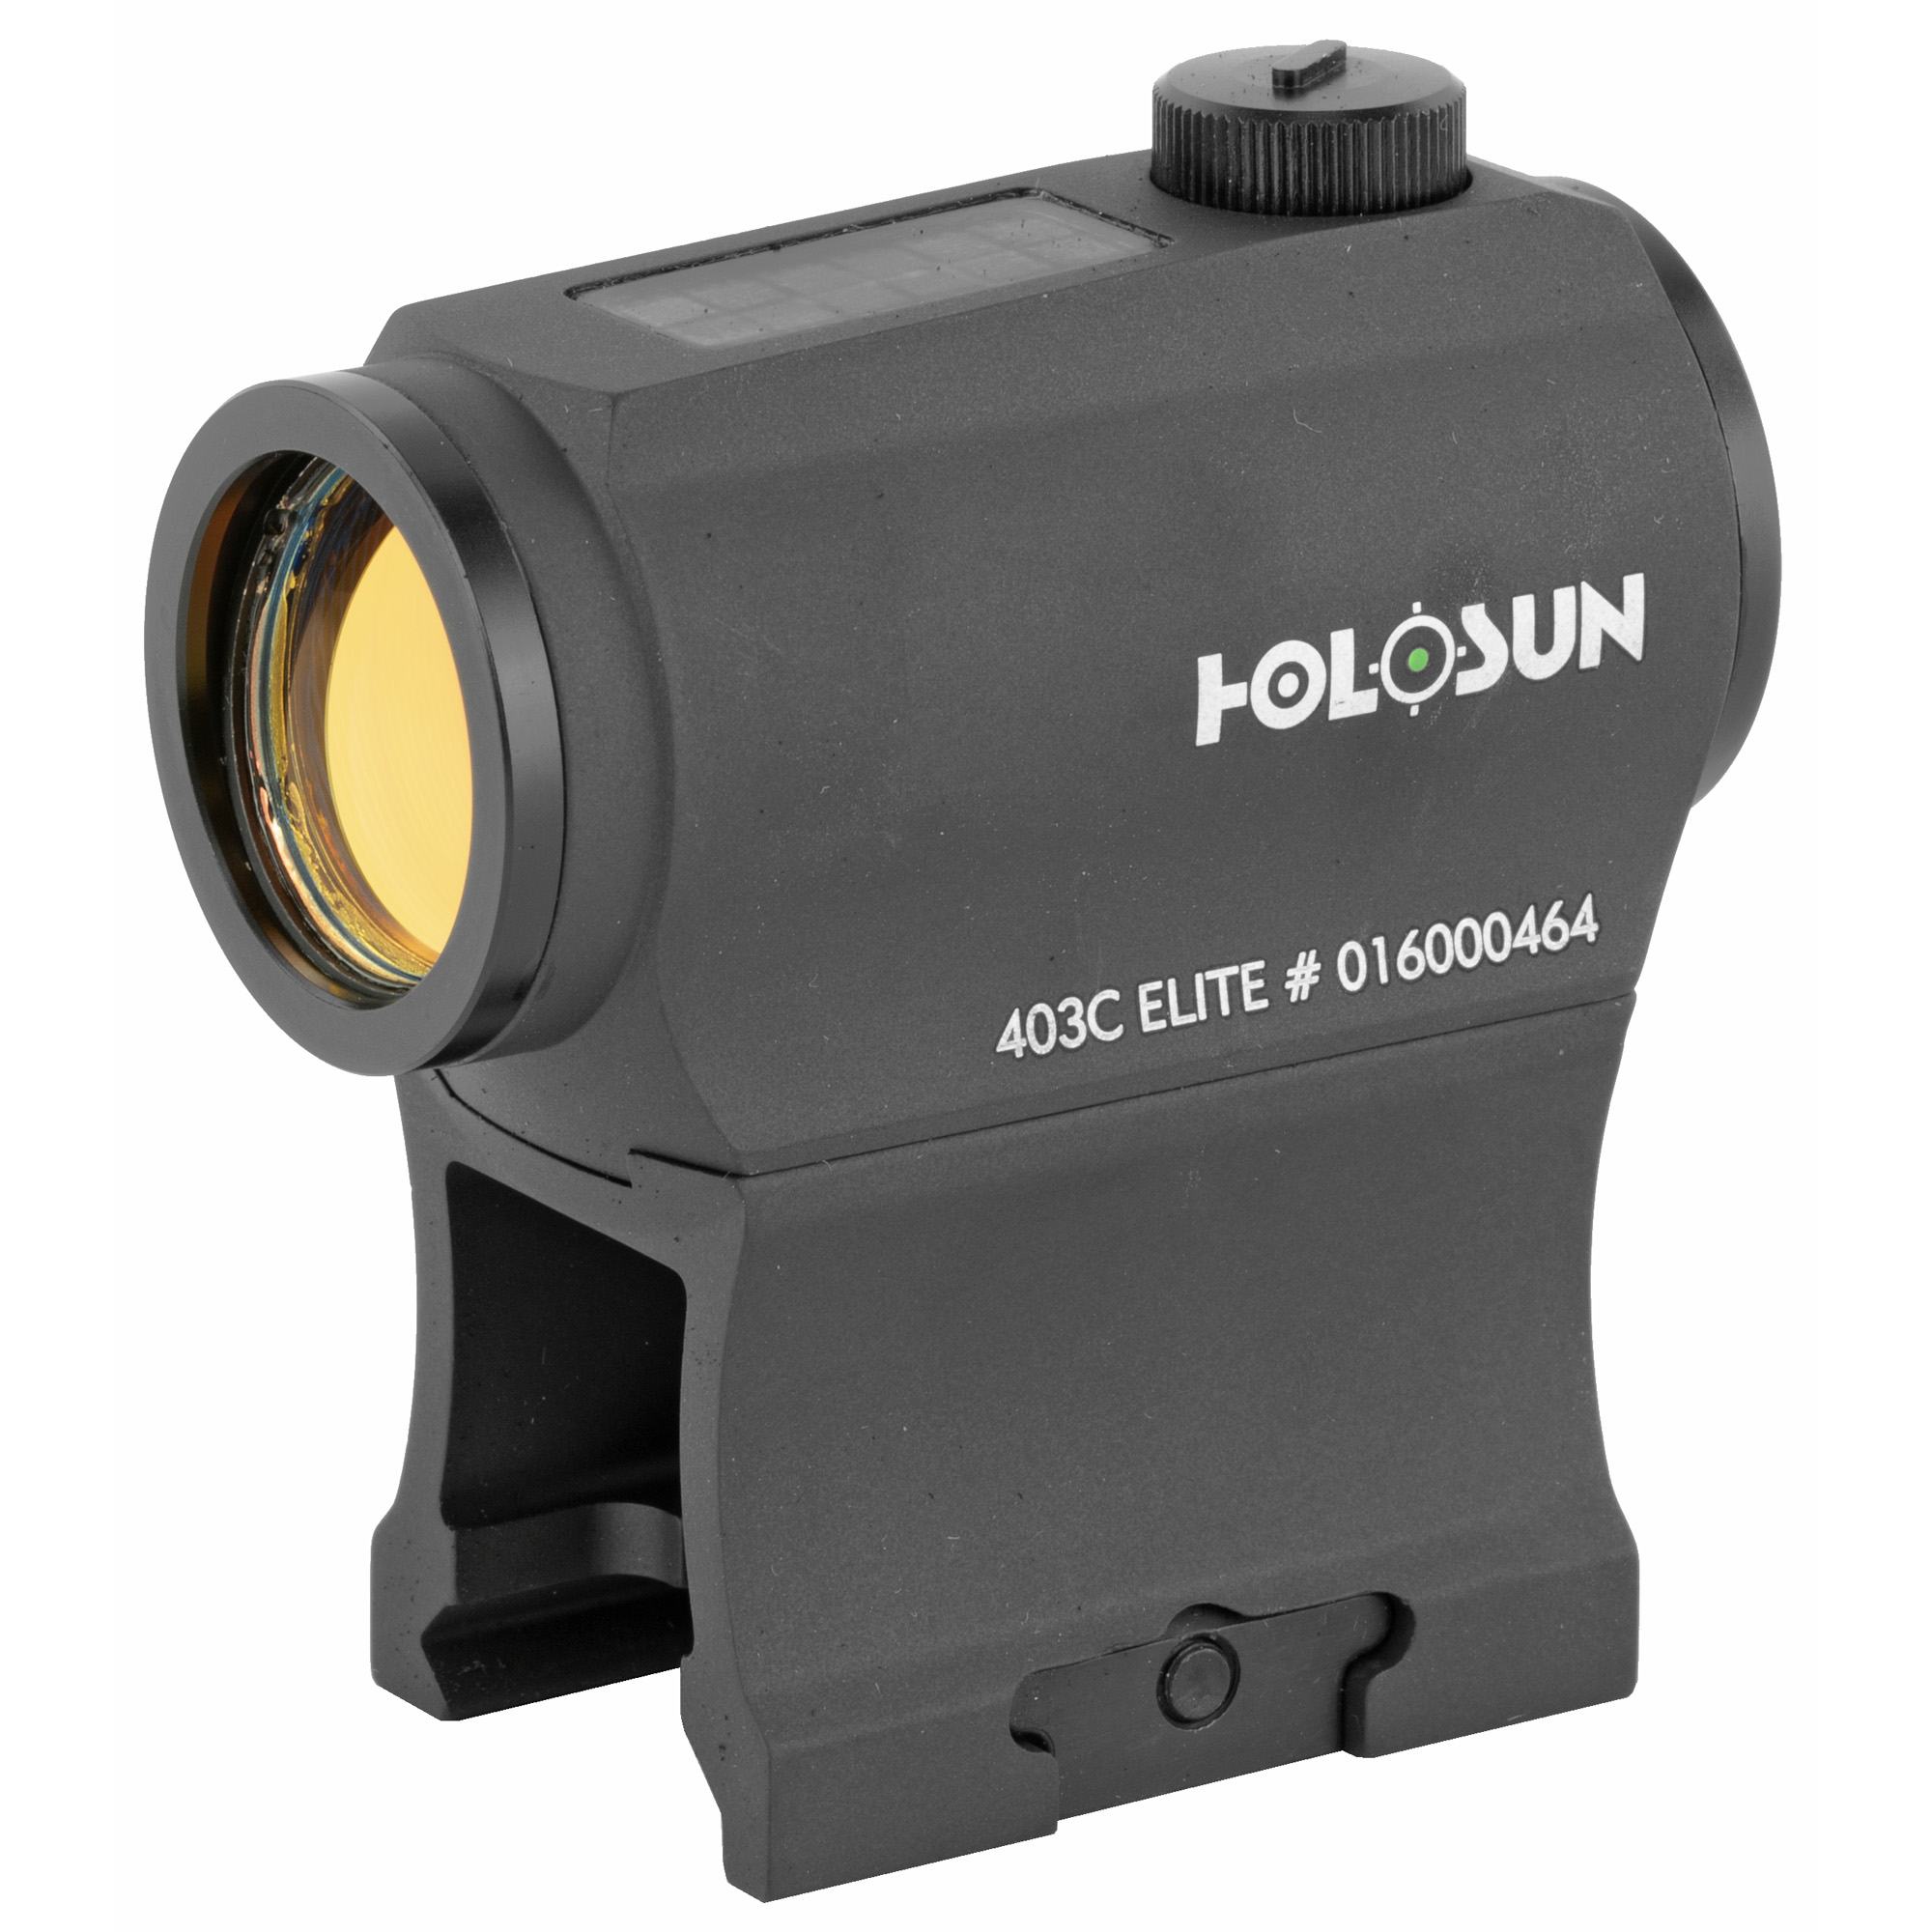 """The HE403C-GR Elite is our new green reticle"""" solar version of the extremely popular HS403C red-dot. It features a crisp green 2MOA dot. Our highly efficient light emitting diodes and solar cells allow Holosun solar optics to run without a battery in many lighting conditions. Additionally"""" the CR2032 battery lasts up to 5-years. The HE403C-GR Elite is compatible with industry standard mounting solutions."""